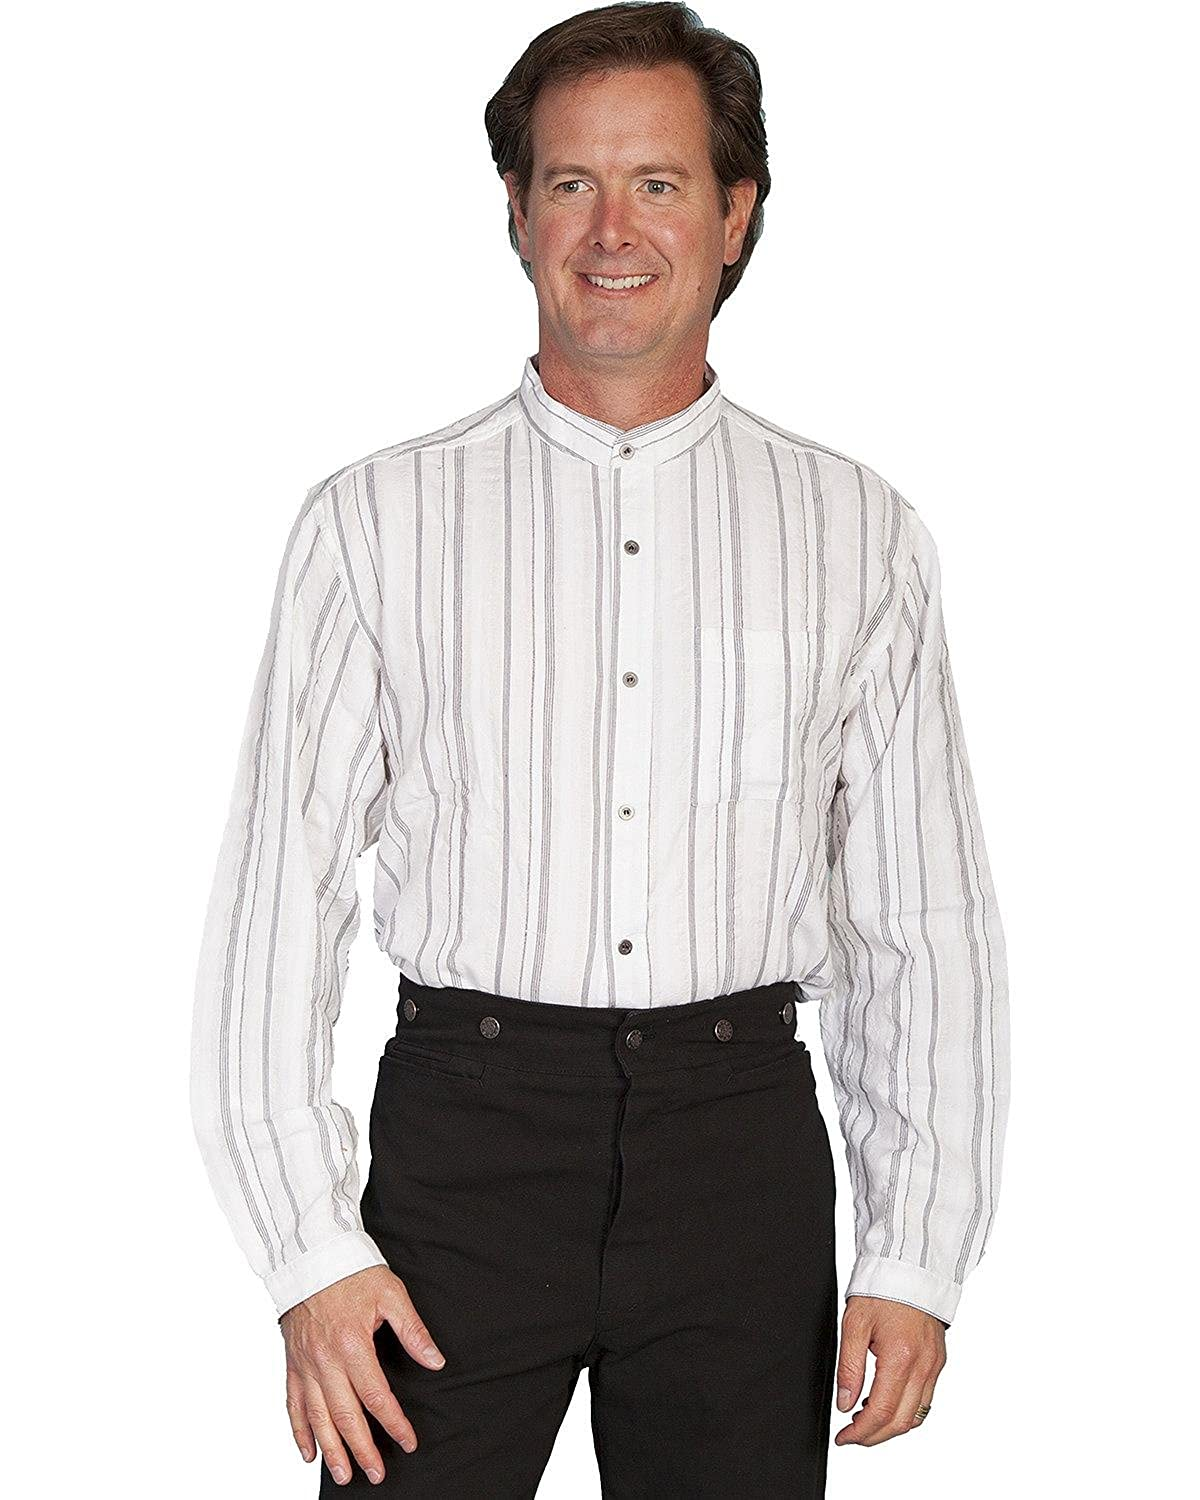 1920s Mens Shirts and Collars History Scully One of Our Best Selling Shirts - White $49.99 AT vintagedancer.com